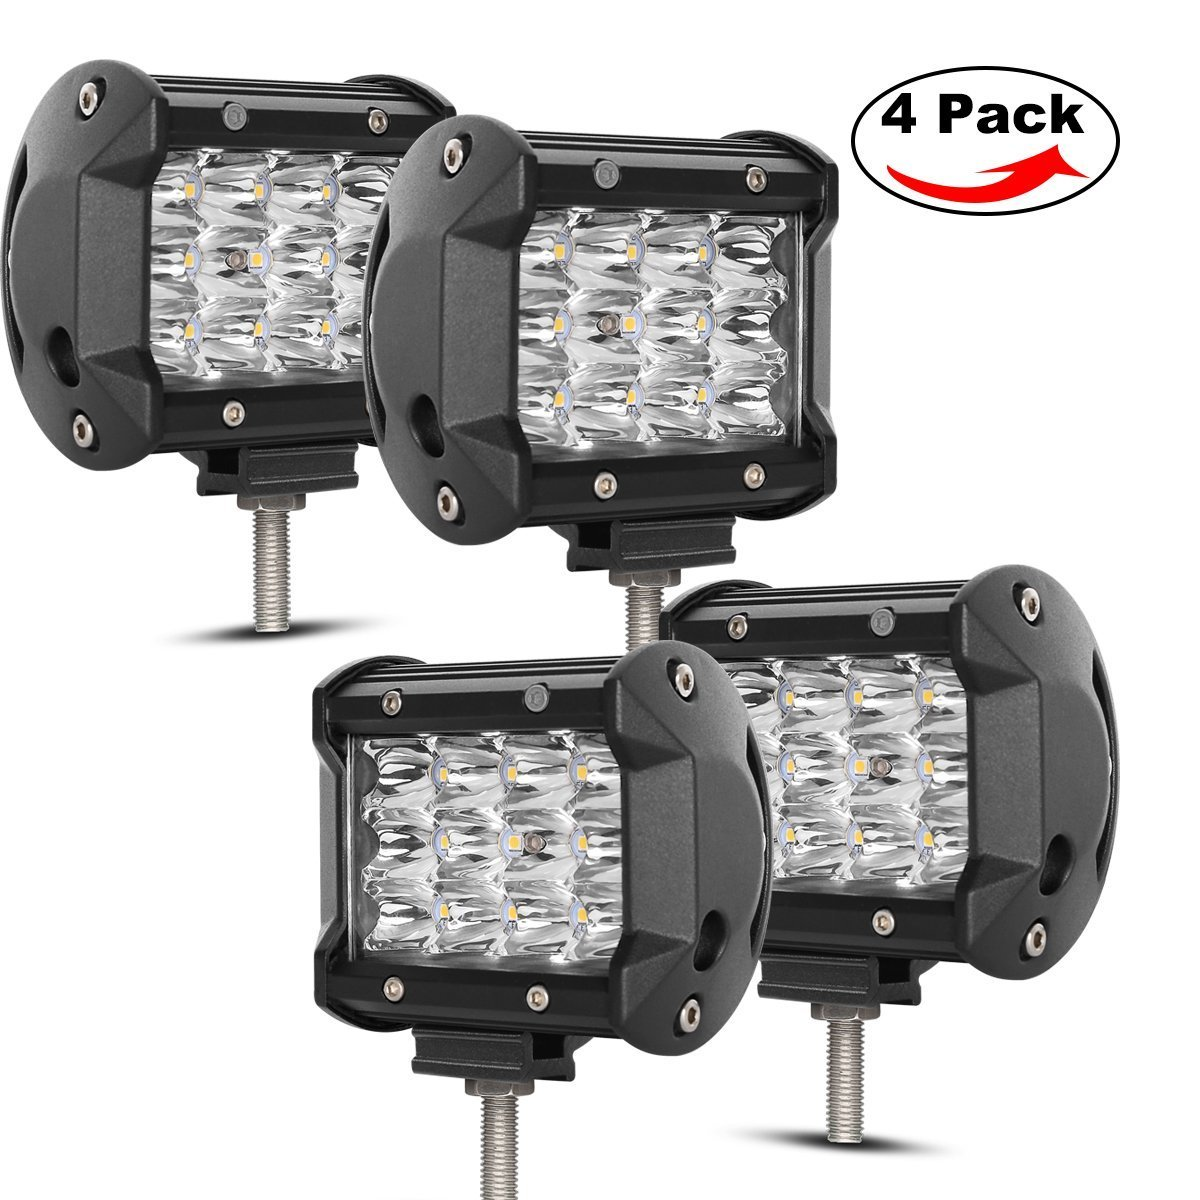 Led Pods, Rigidhorse Triple Row 4 pcs 4' 40W LED Spot Lights Off Road Lights LED Driving Light For Jeep SUV Trucks Pickup Boat, Come With Slidable Mounting Bracket, 2 Years Warranty